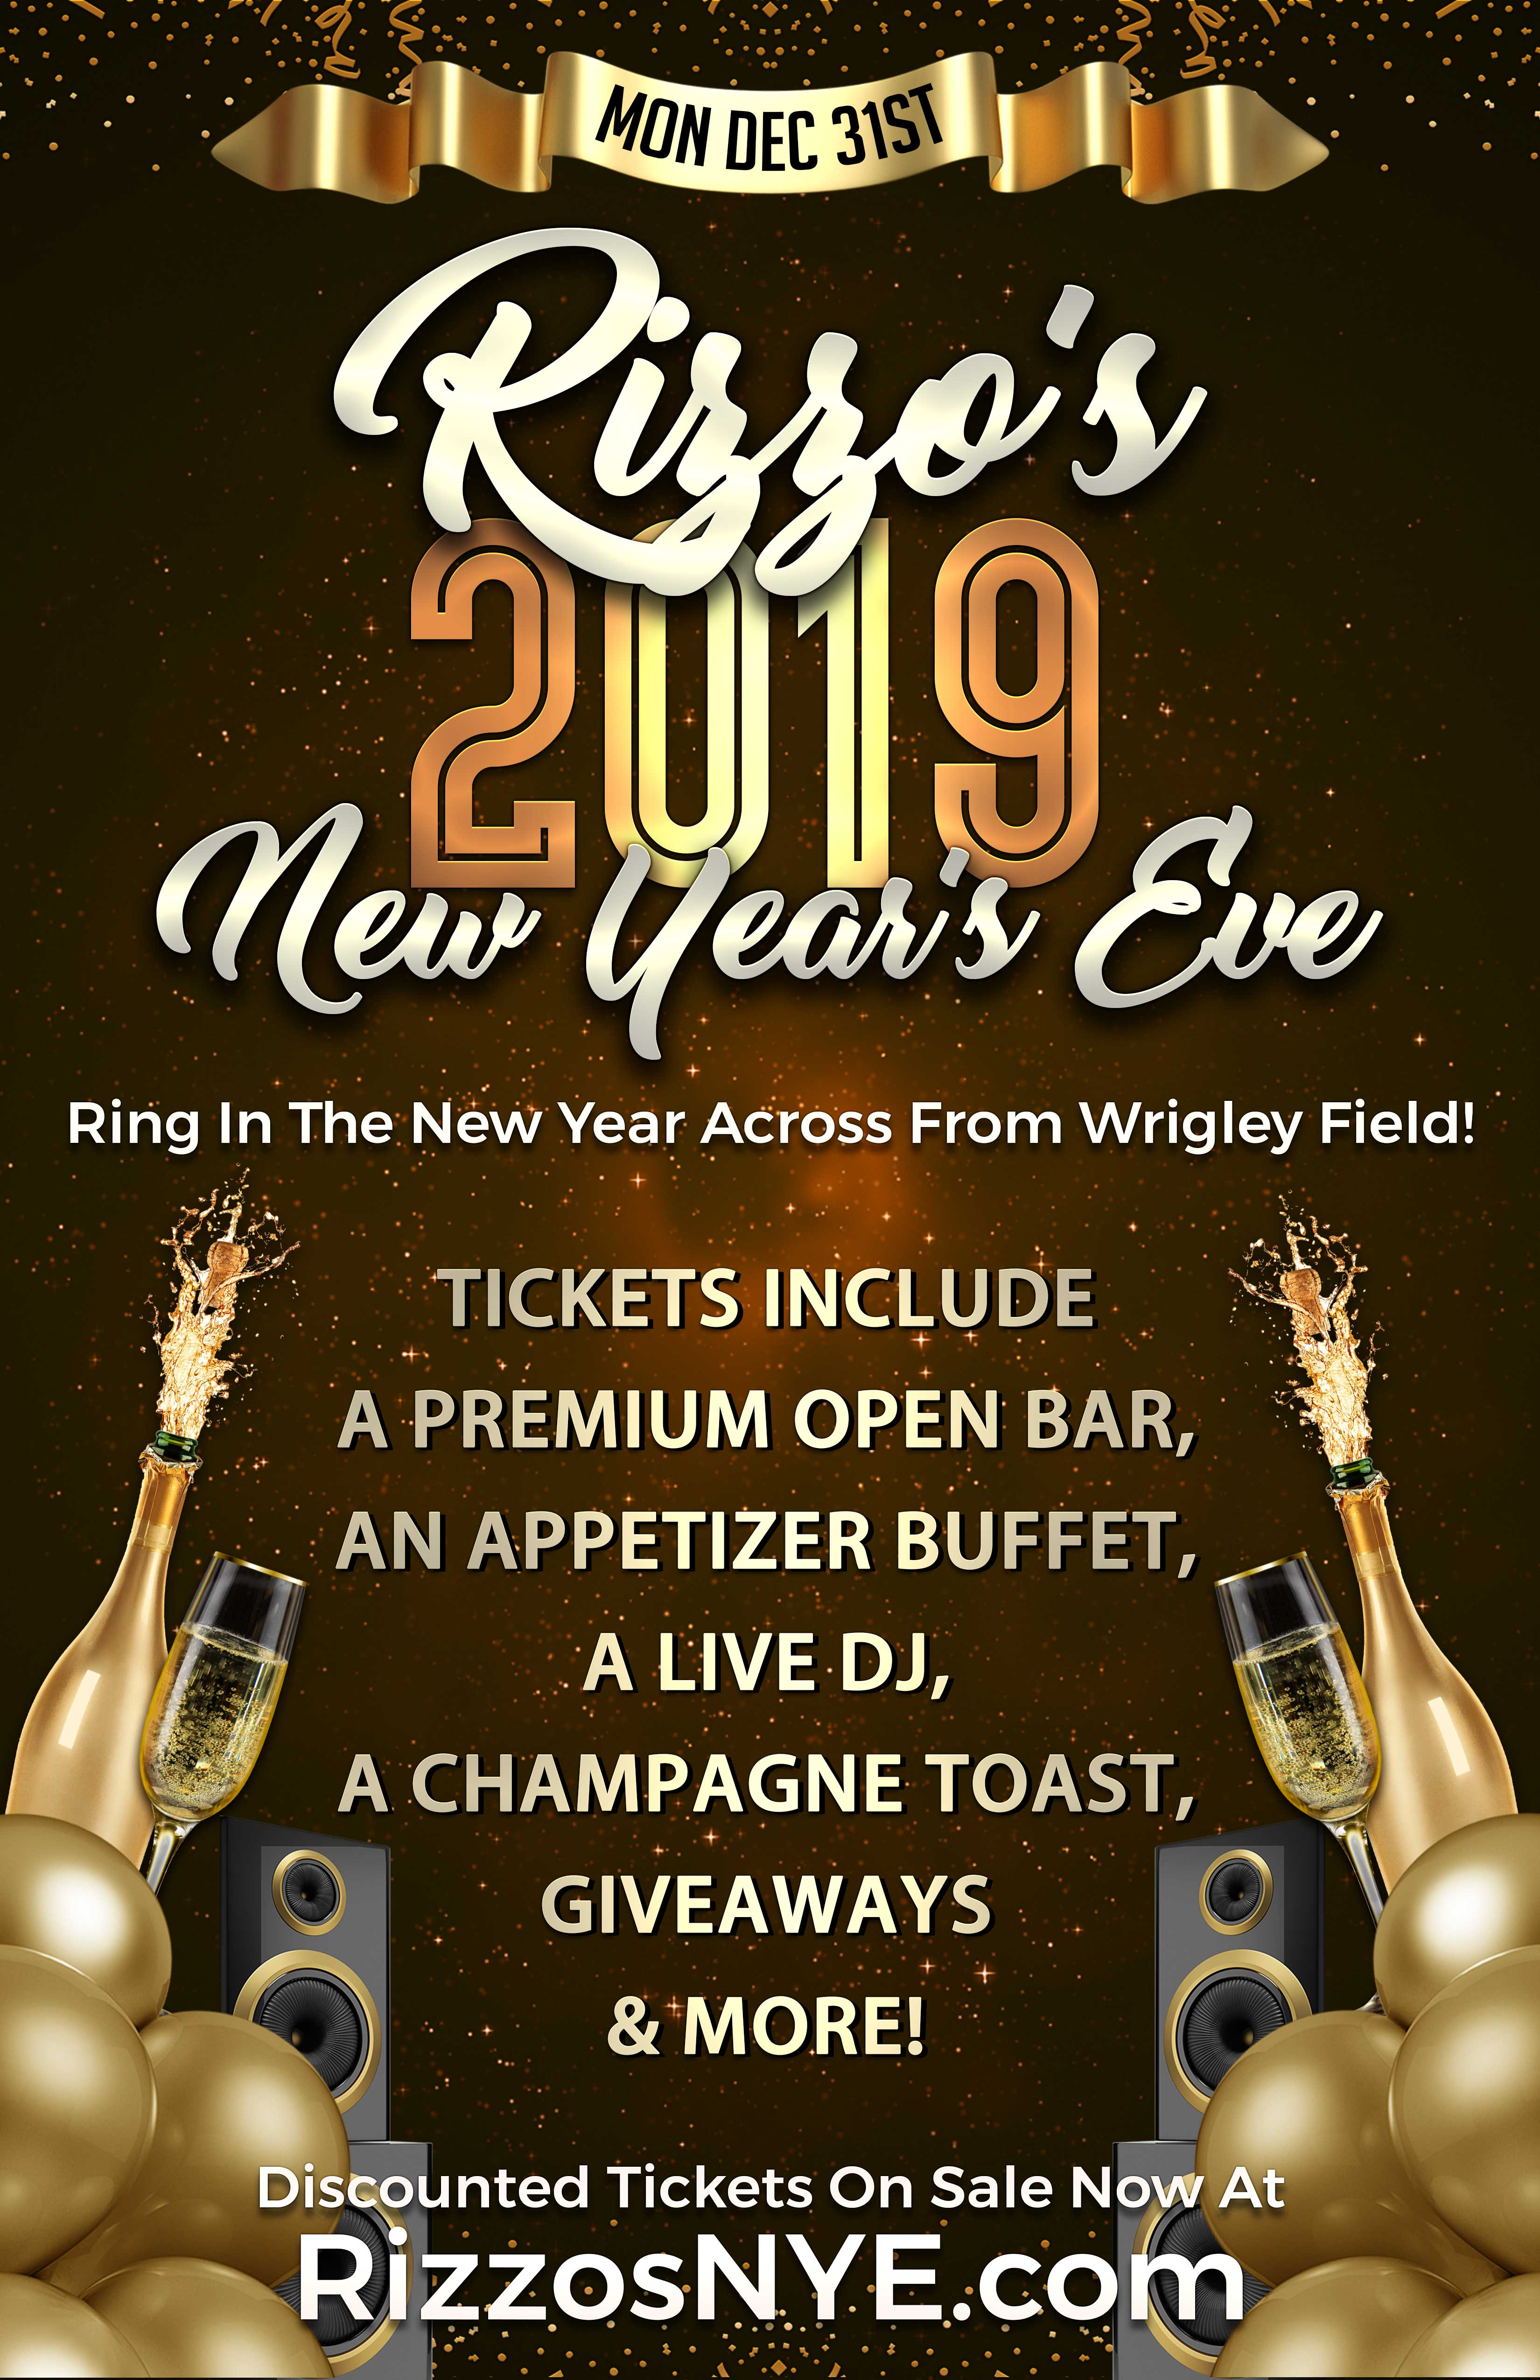 Rizzo's Bar & Inn New Year's Eve Party - Tickets Include A Premium Open Bar, An Appetizer Buffet, A Live DJ,  A Champagne Toast at Midnight, Giveaways & More!